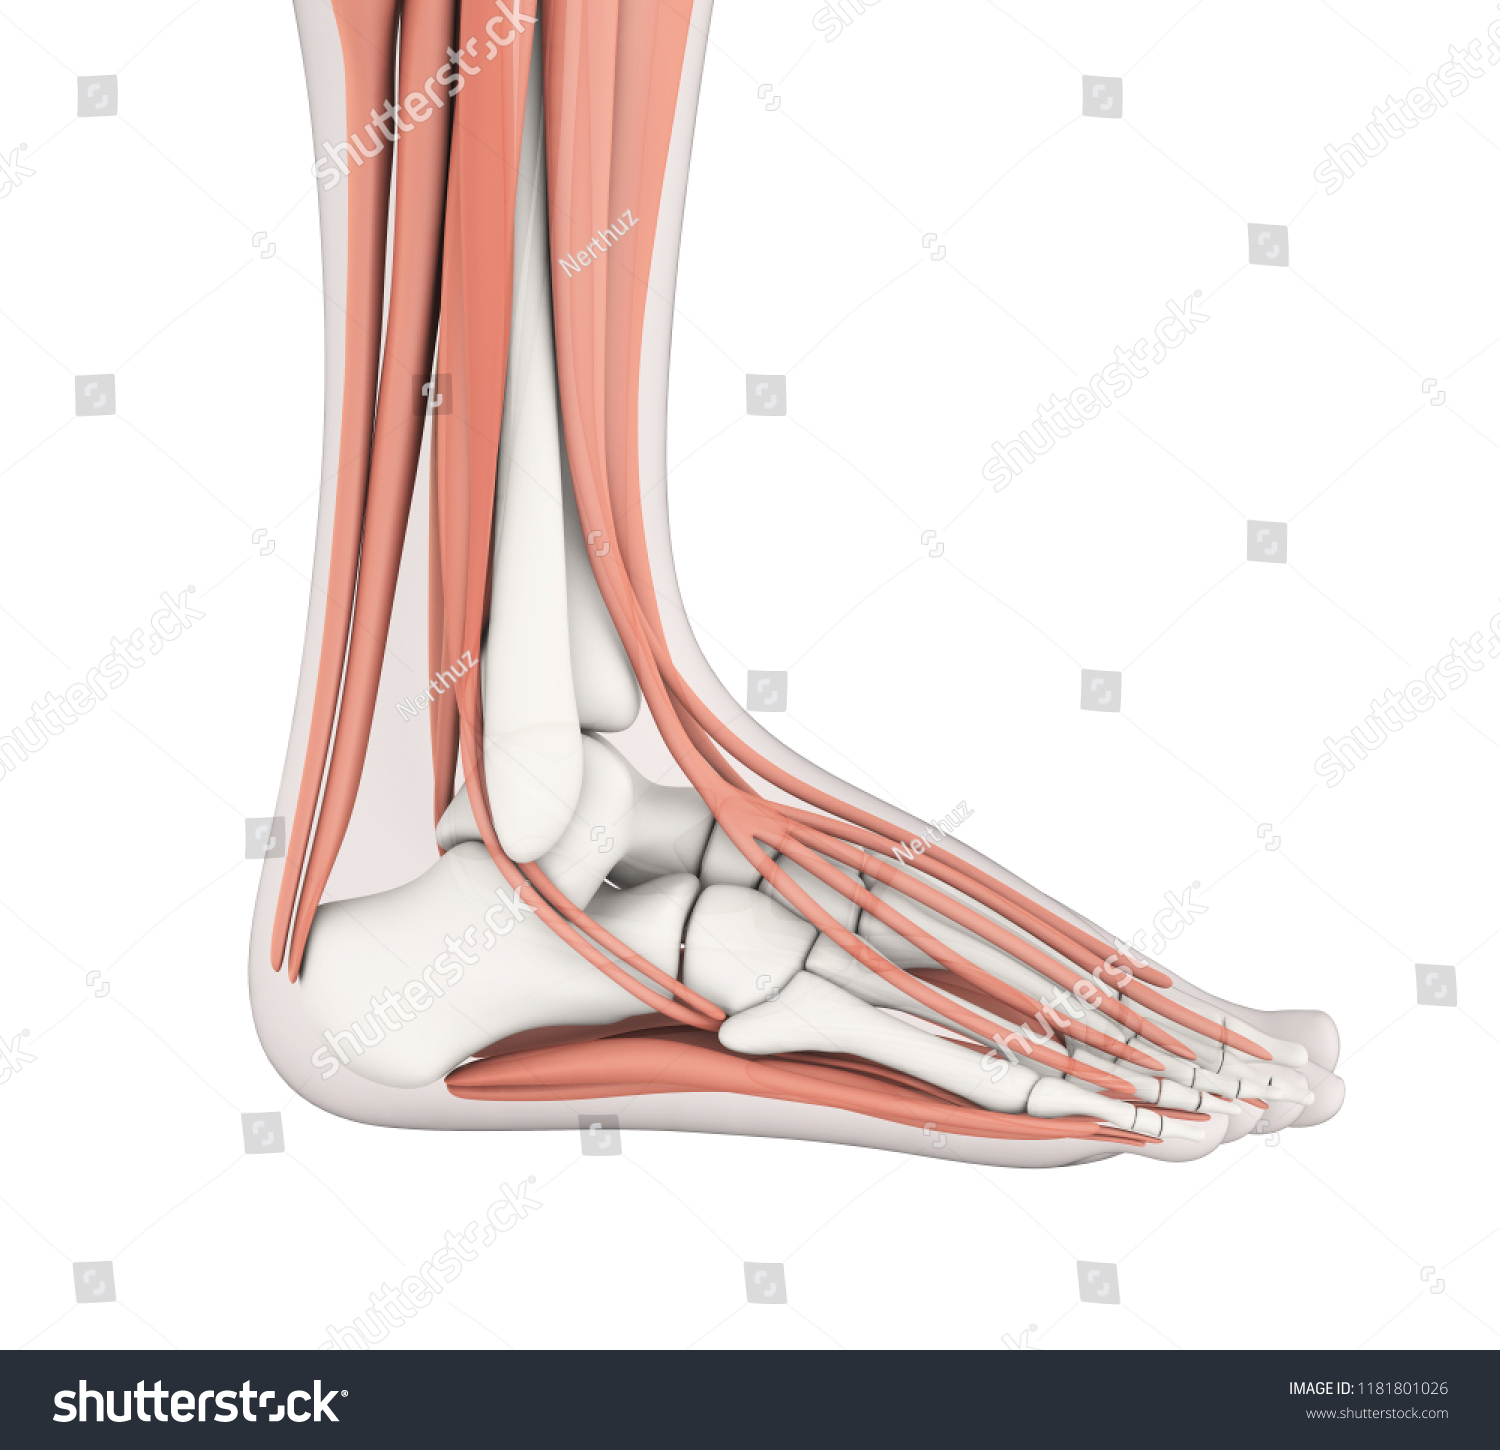 Human Foot Muscles Anatomy 3 D Rendering Stock Illustration